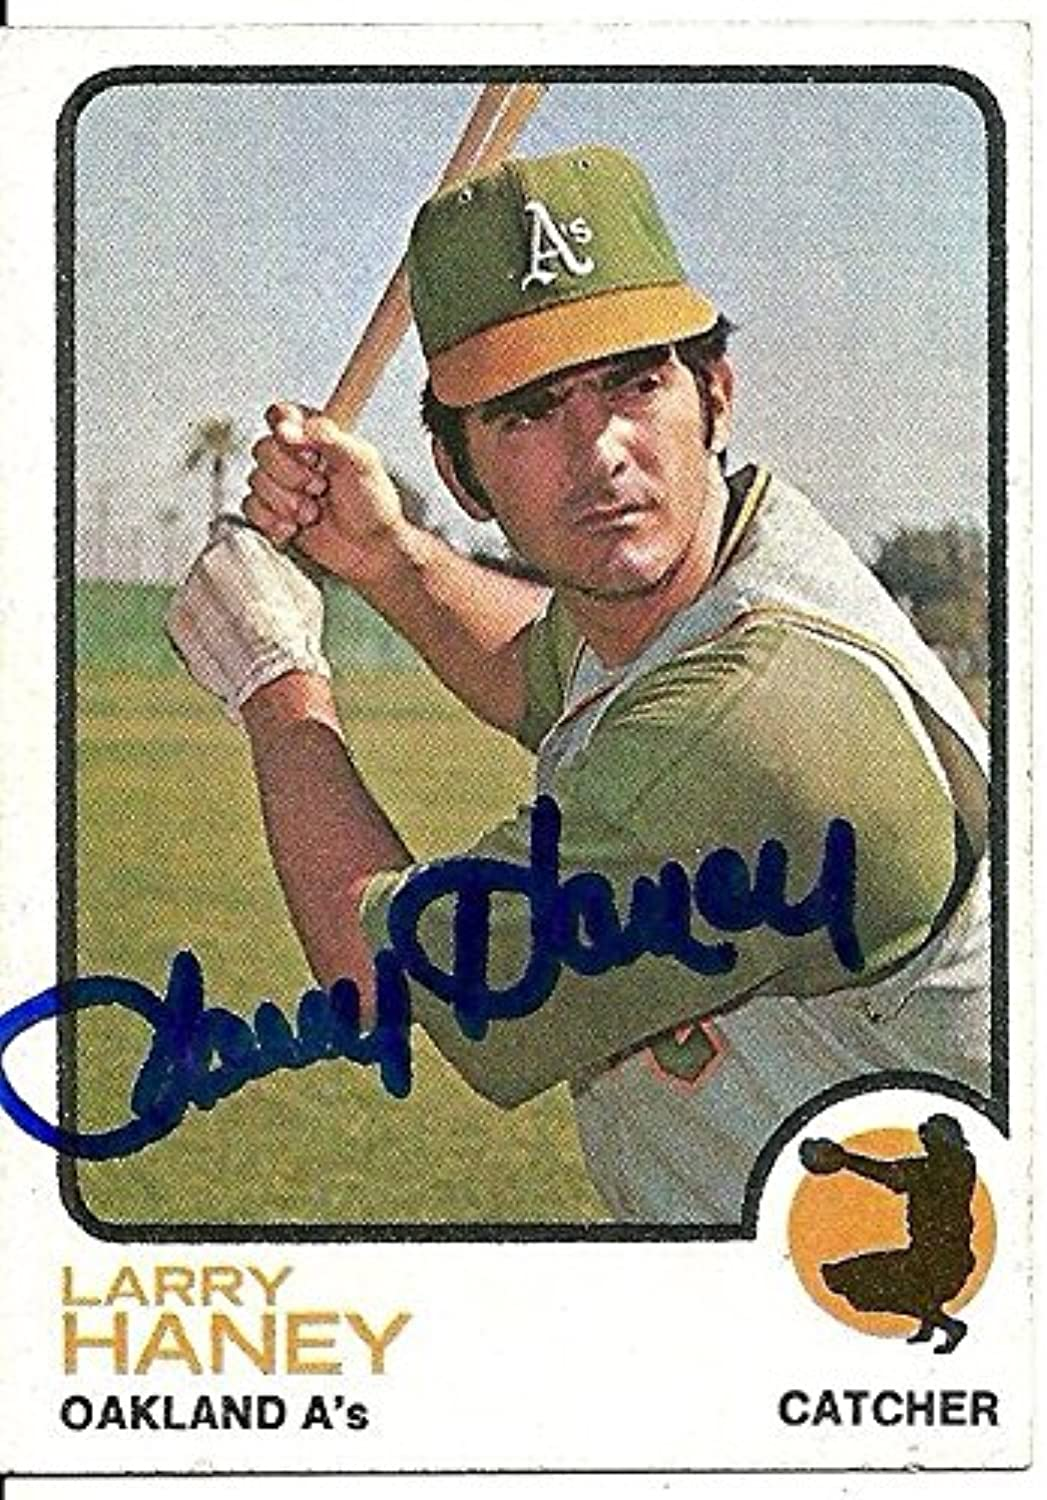 Larry Haney Oakland Athletics Signed Autographed 1973 Topps Card  563 W coaBaseball Slabbed Autographed Cards